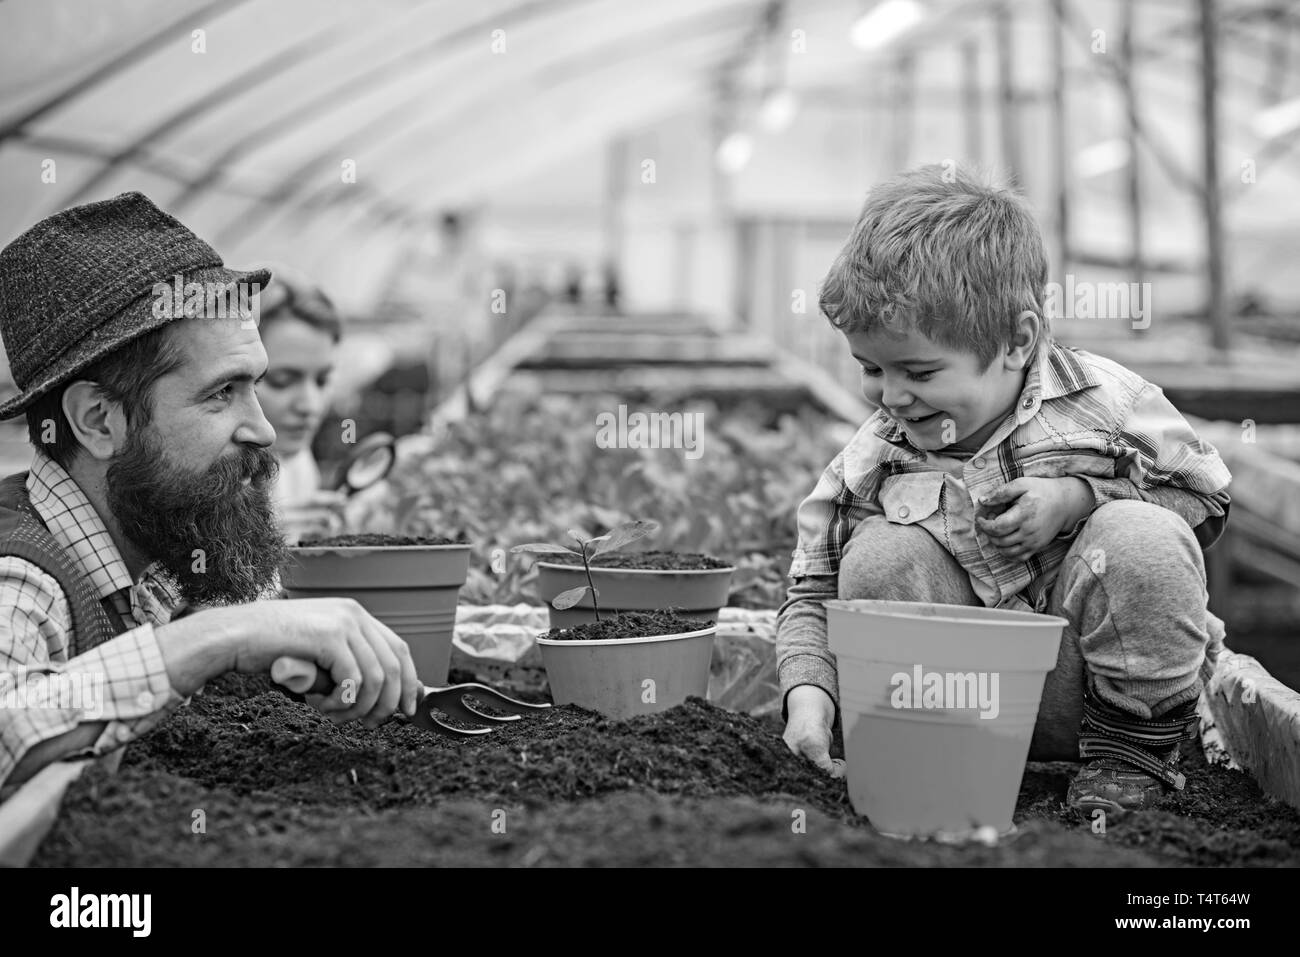 Smiling kid playing with family in greenhouse. Bearded man in blue vest, yellow shirt and hat looking at his son, mommy checking plants with magnifyin - Stock Image